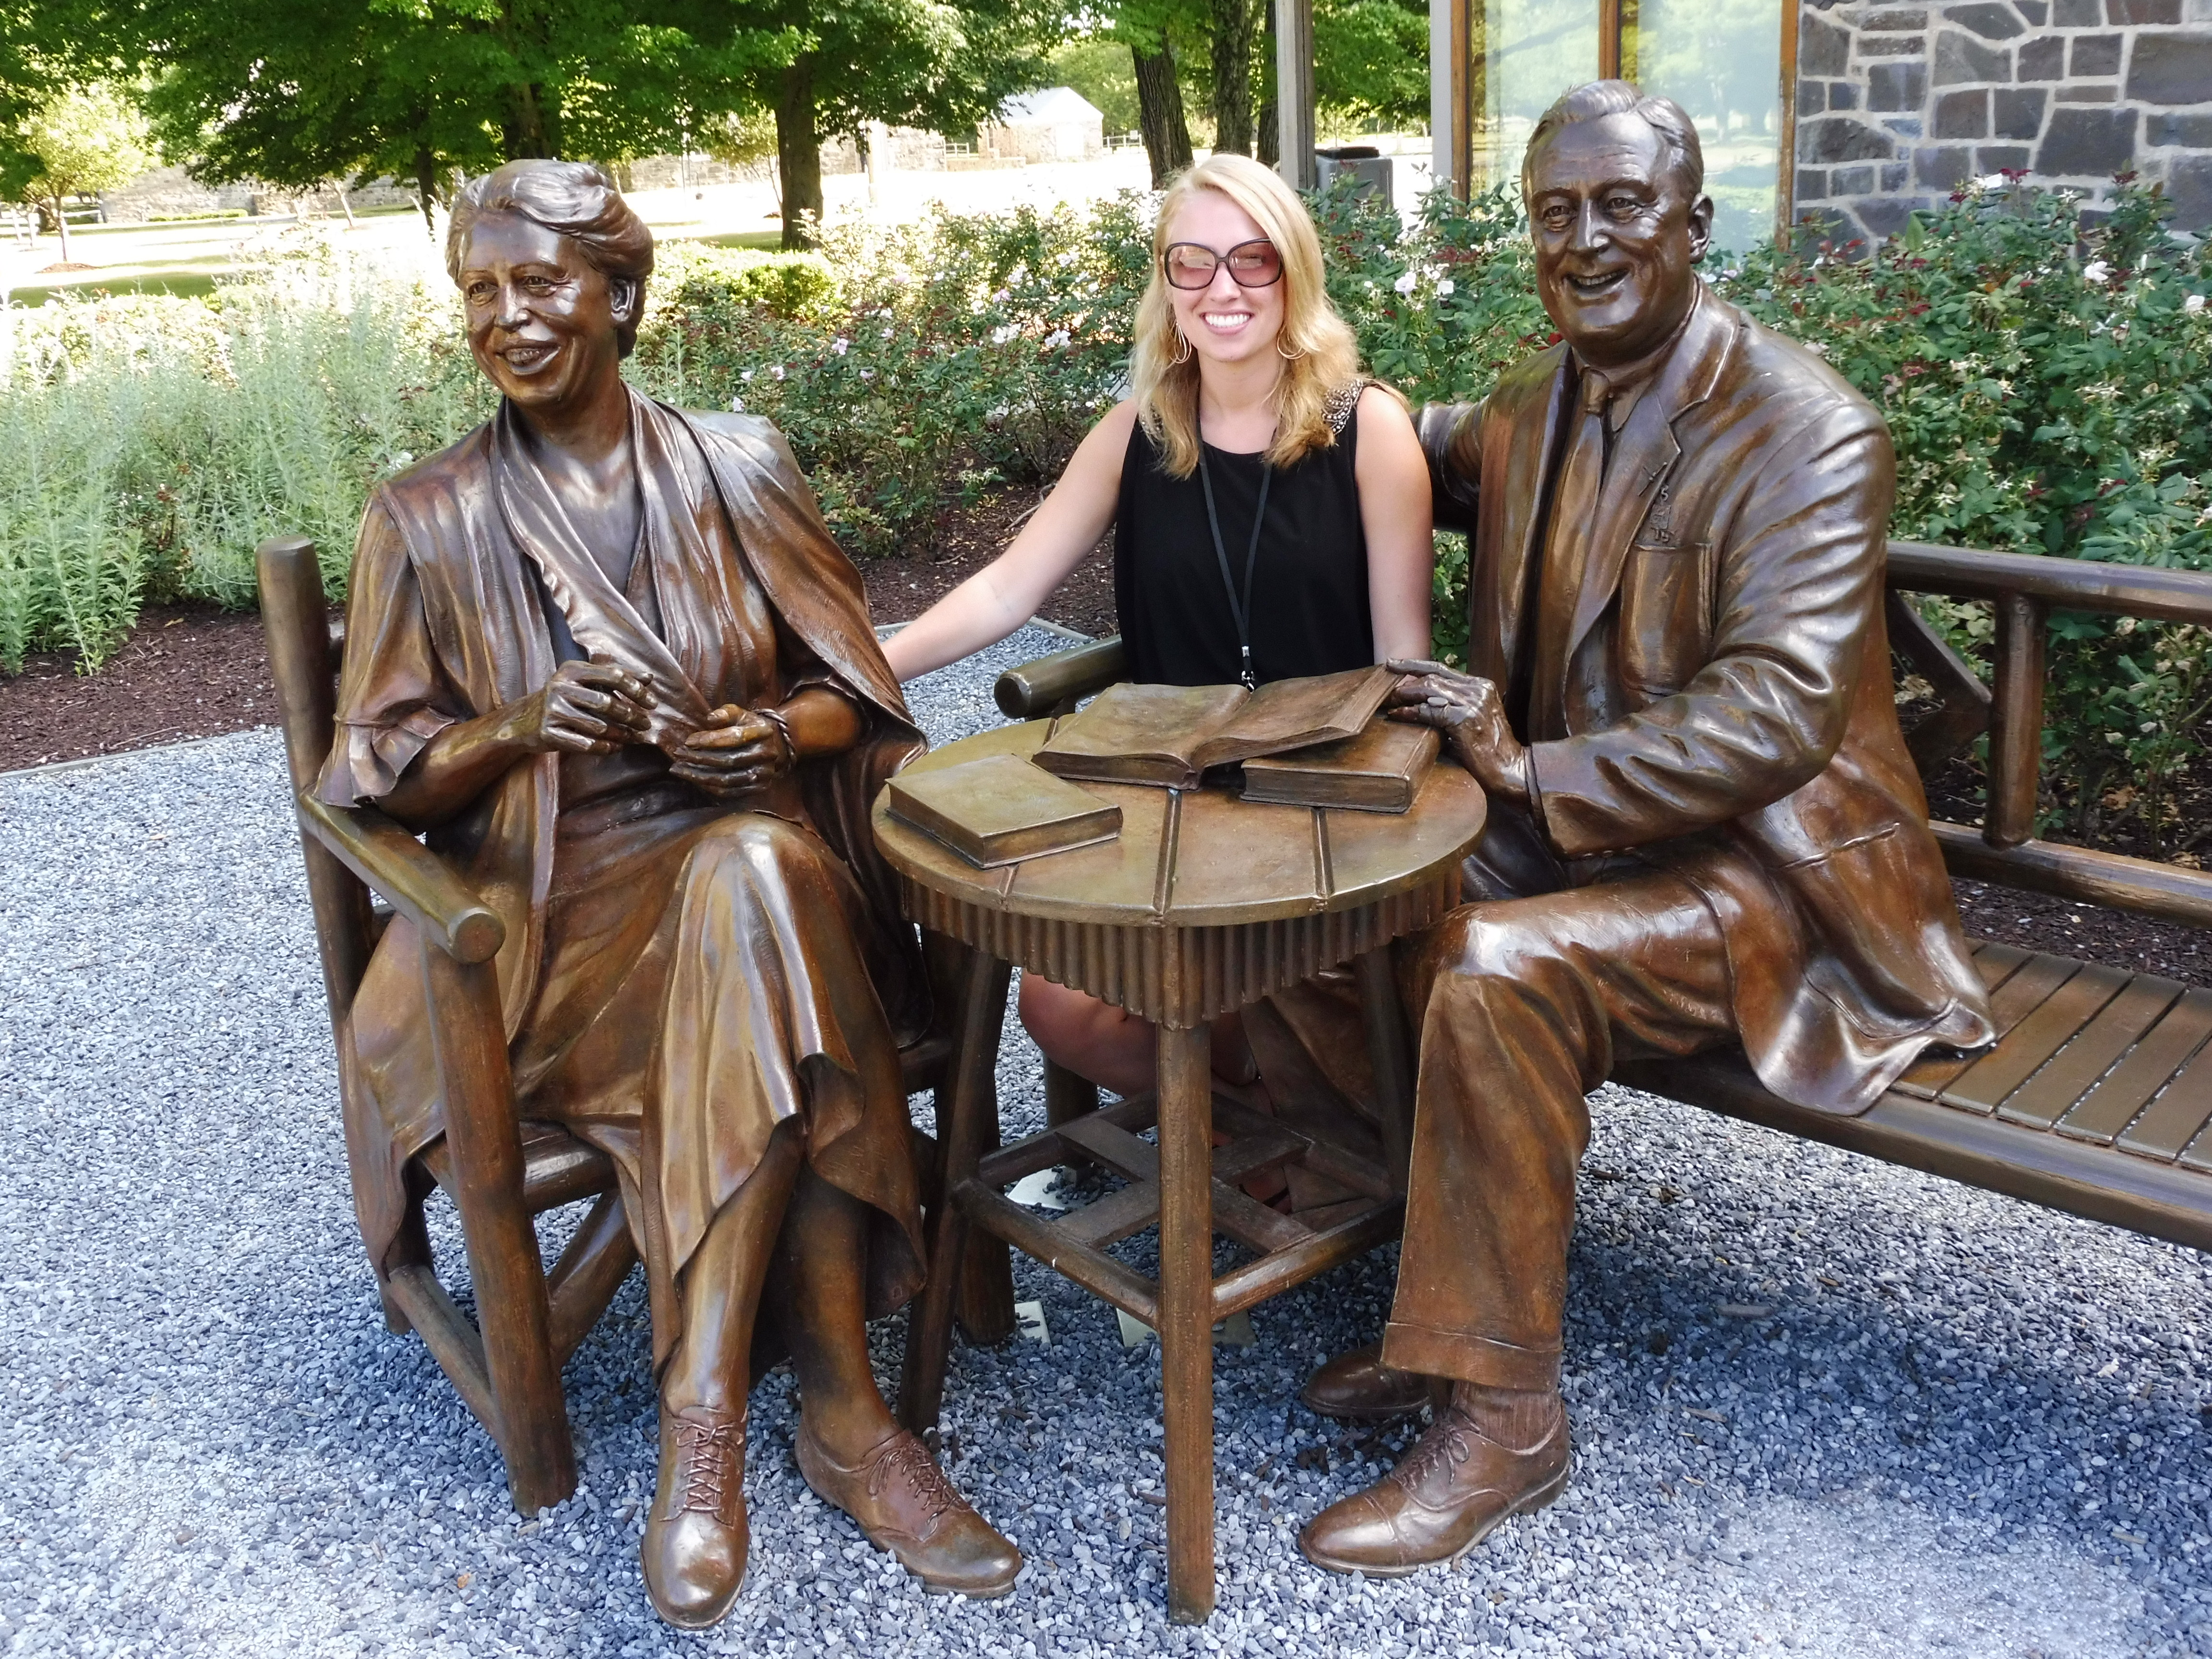 75th Anniversary of the FDR Library